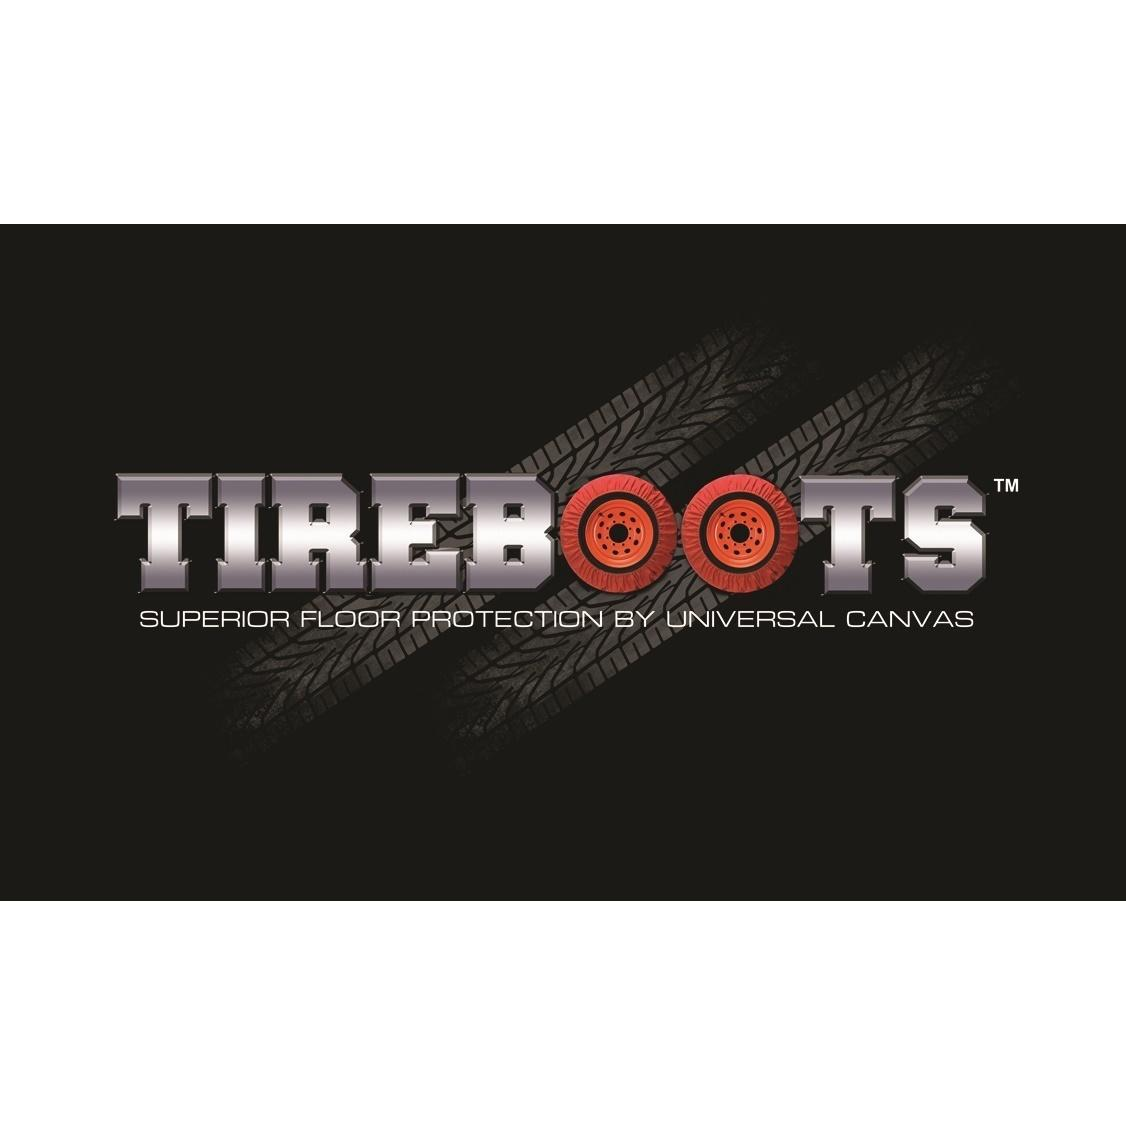 Tireboots By Universal Canvas, Inc.